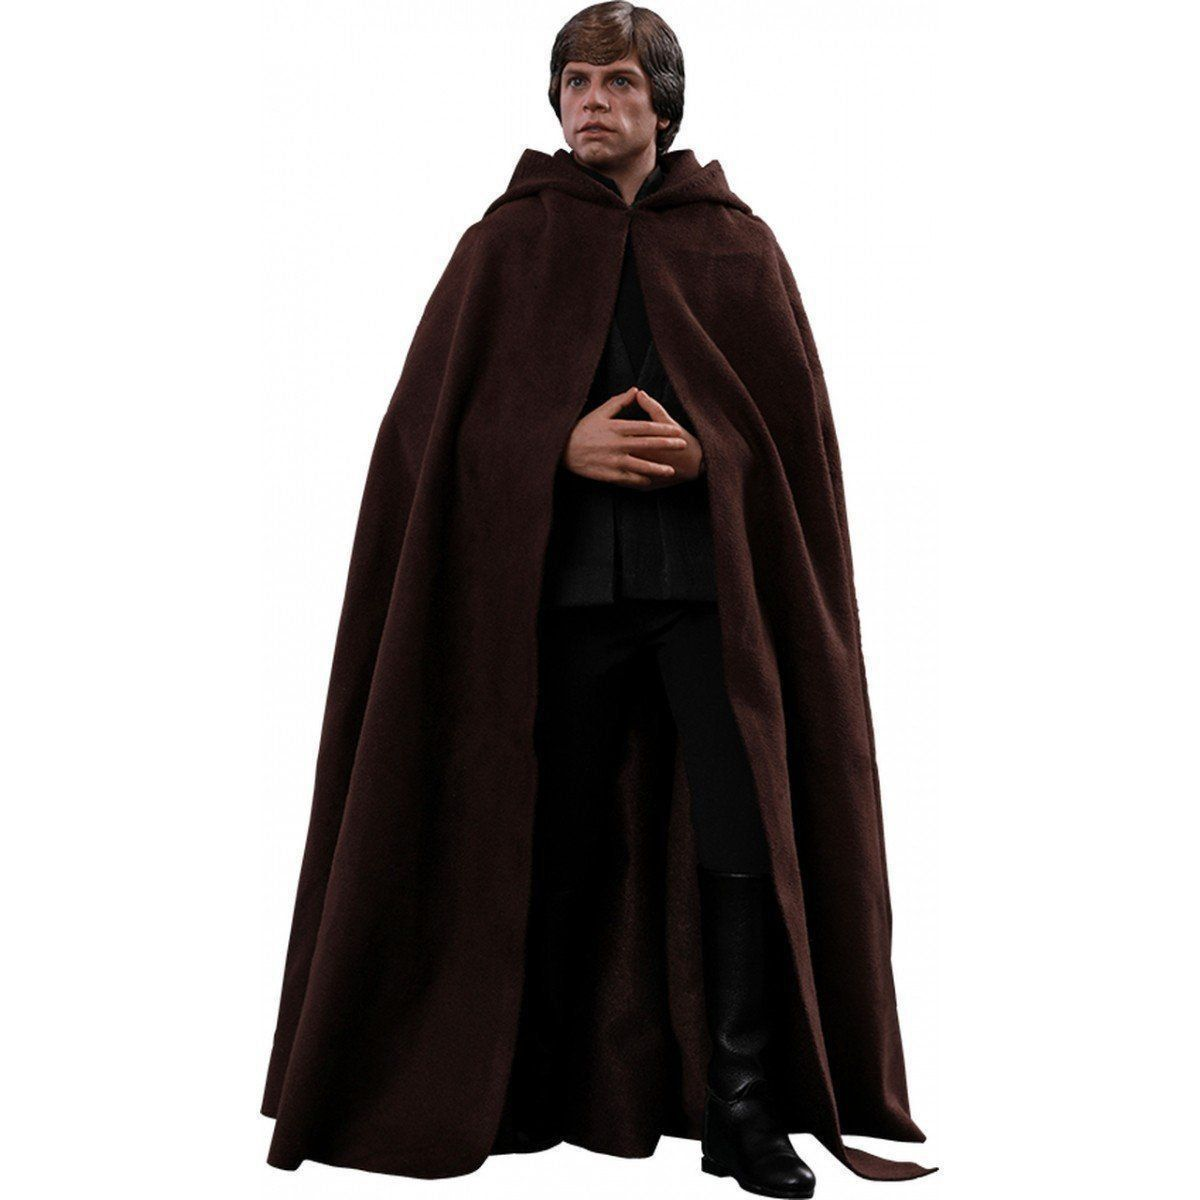 Action Figure Luke Skywalker: Star Wars: O Retorno de Jedi (Return of the Jedi) Boneco Colecionável Escala 1/6 (MMS429) - Hot Toys